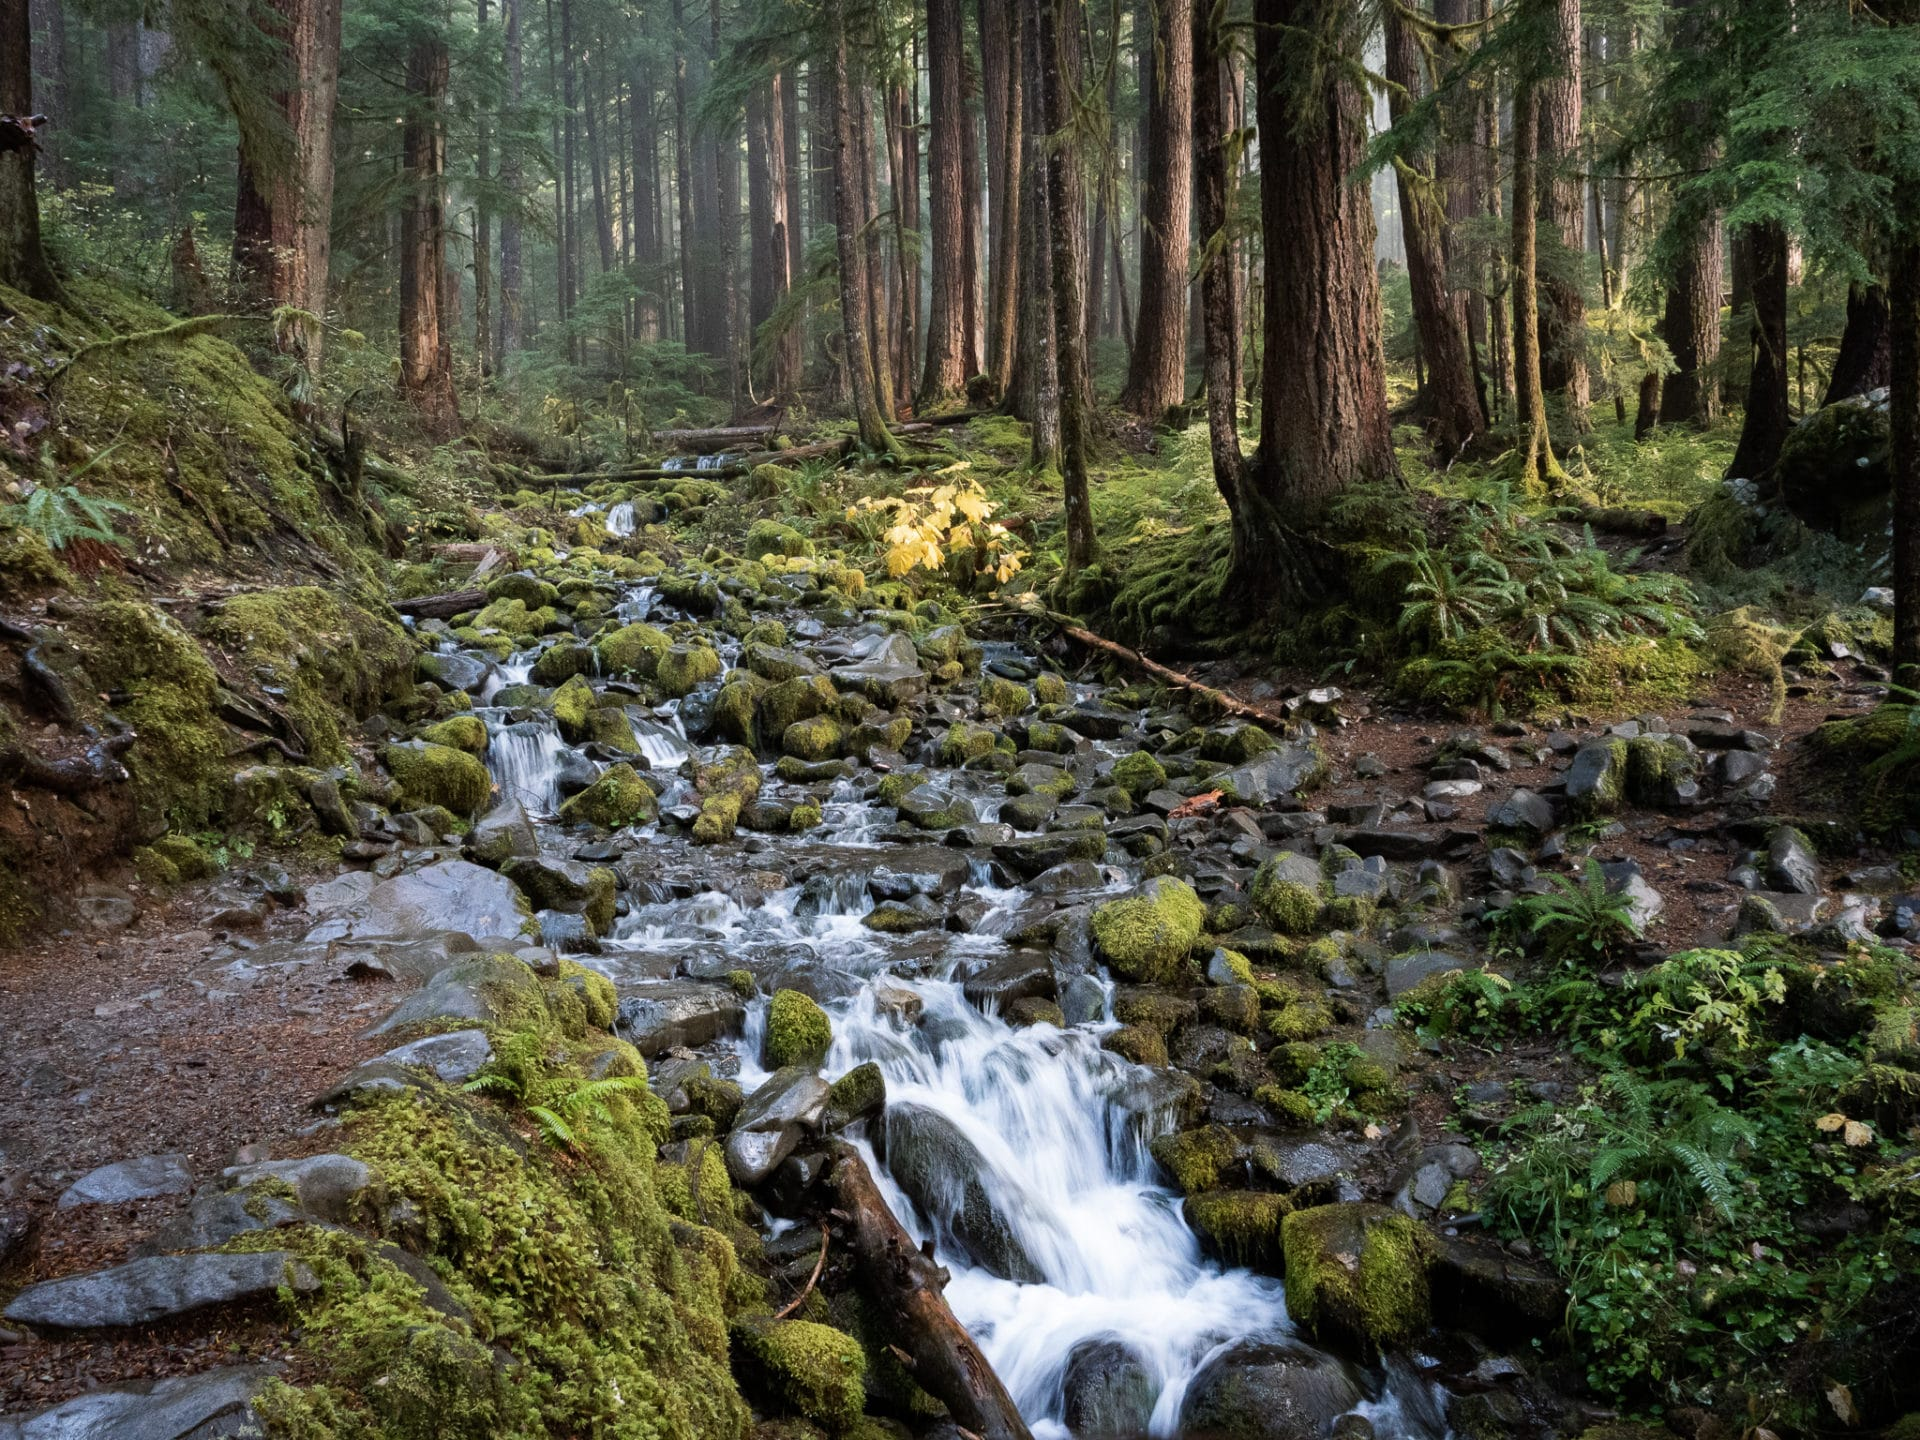 Sol-Duc-Trail-Olympic-National-Park-Stream